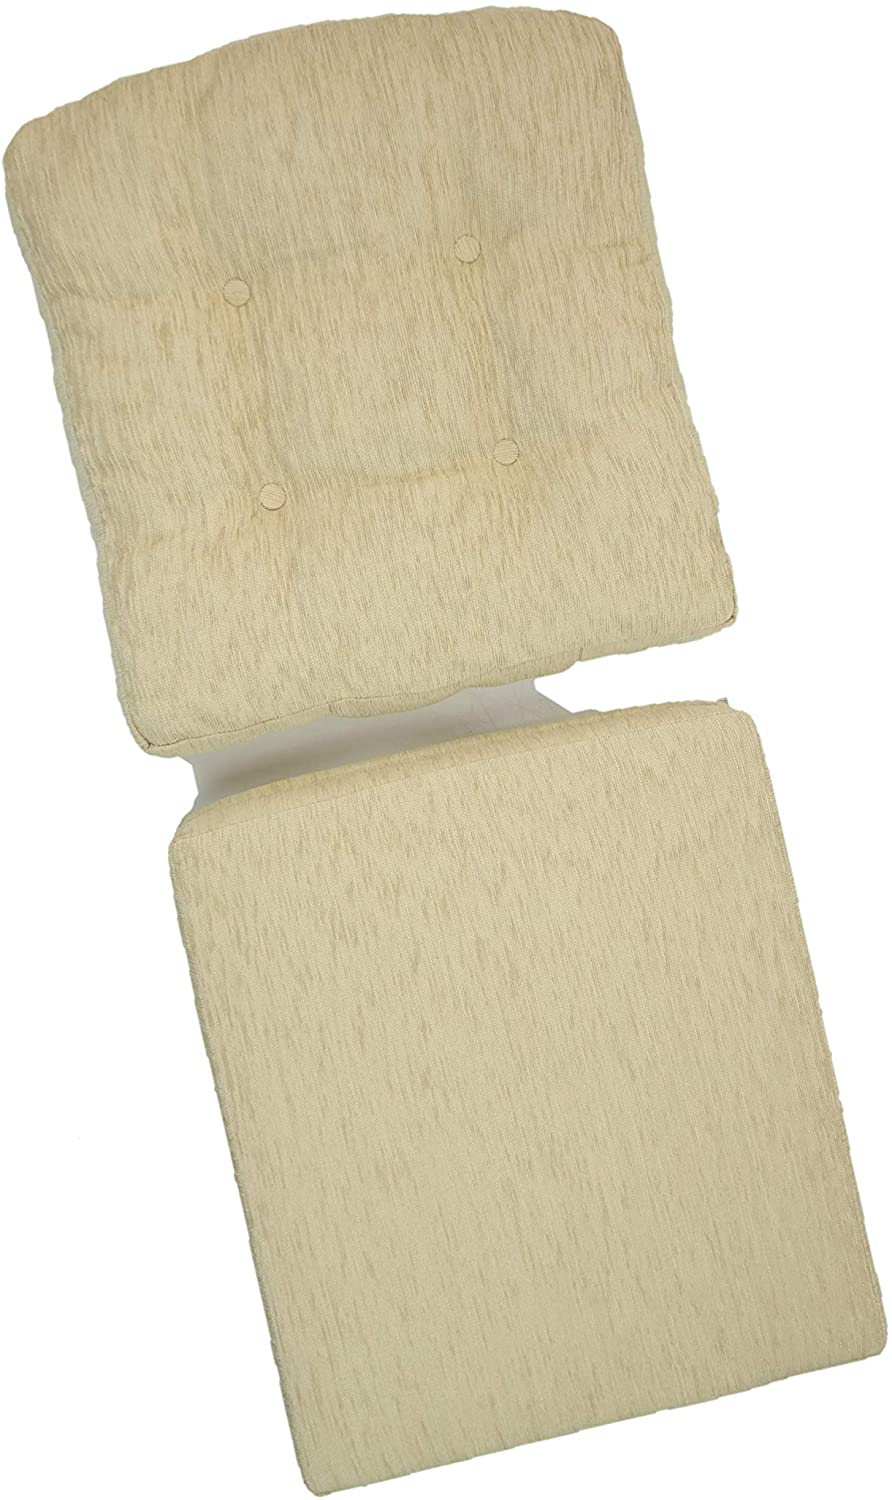 Set of 2 Cushion for Lounge Chair (only Cushions), Cream